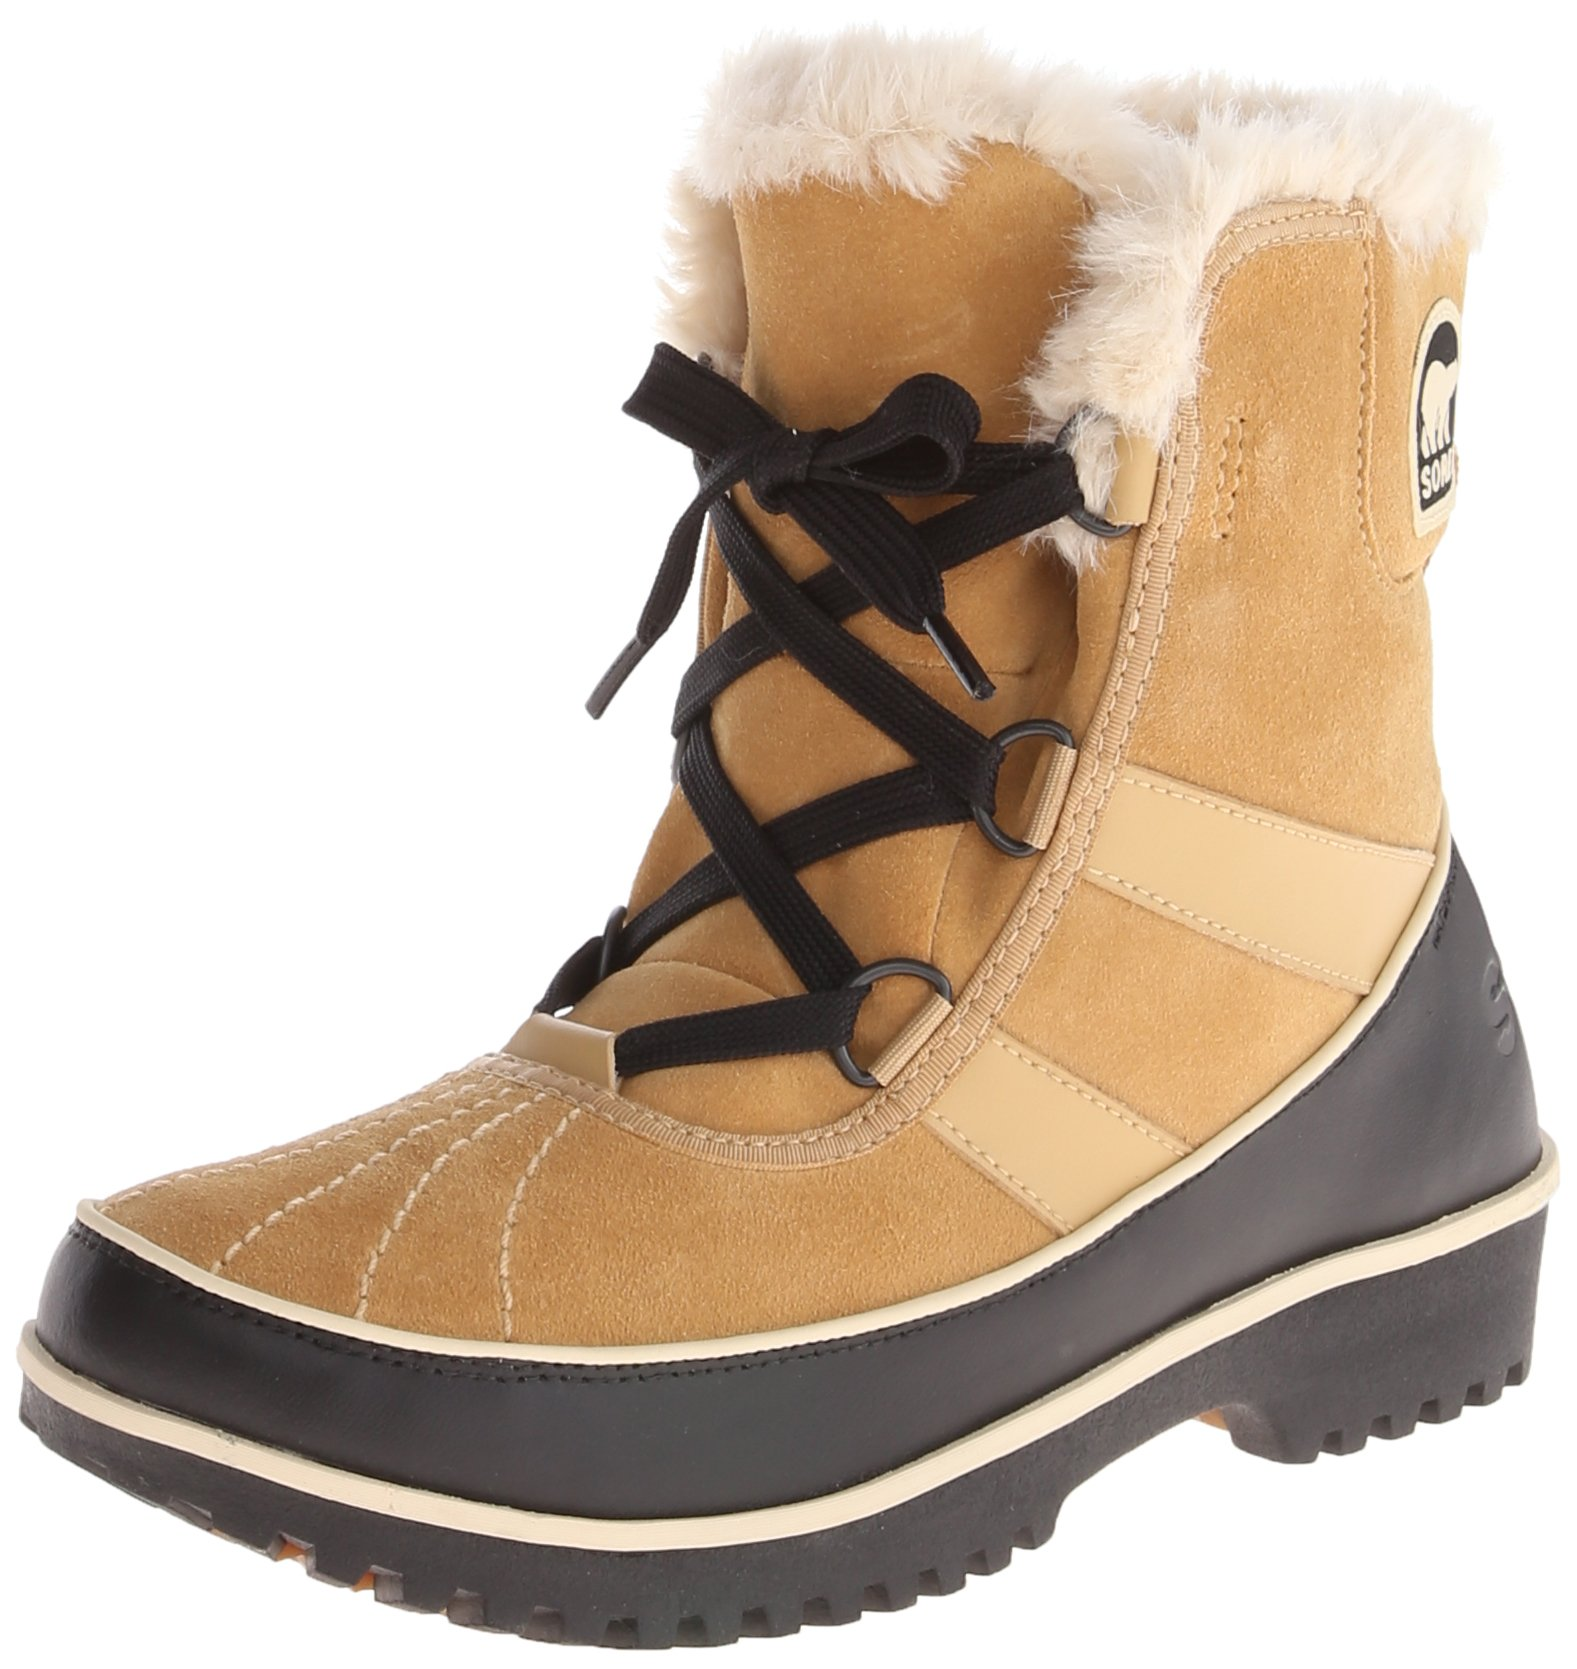 Sorel Women's Tivoli II Boot, curry, 8 M US